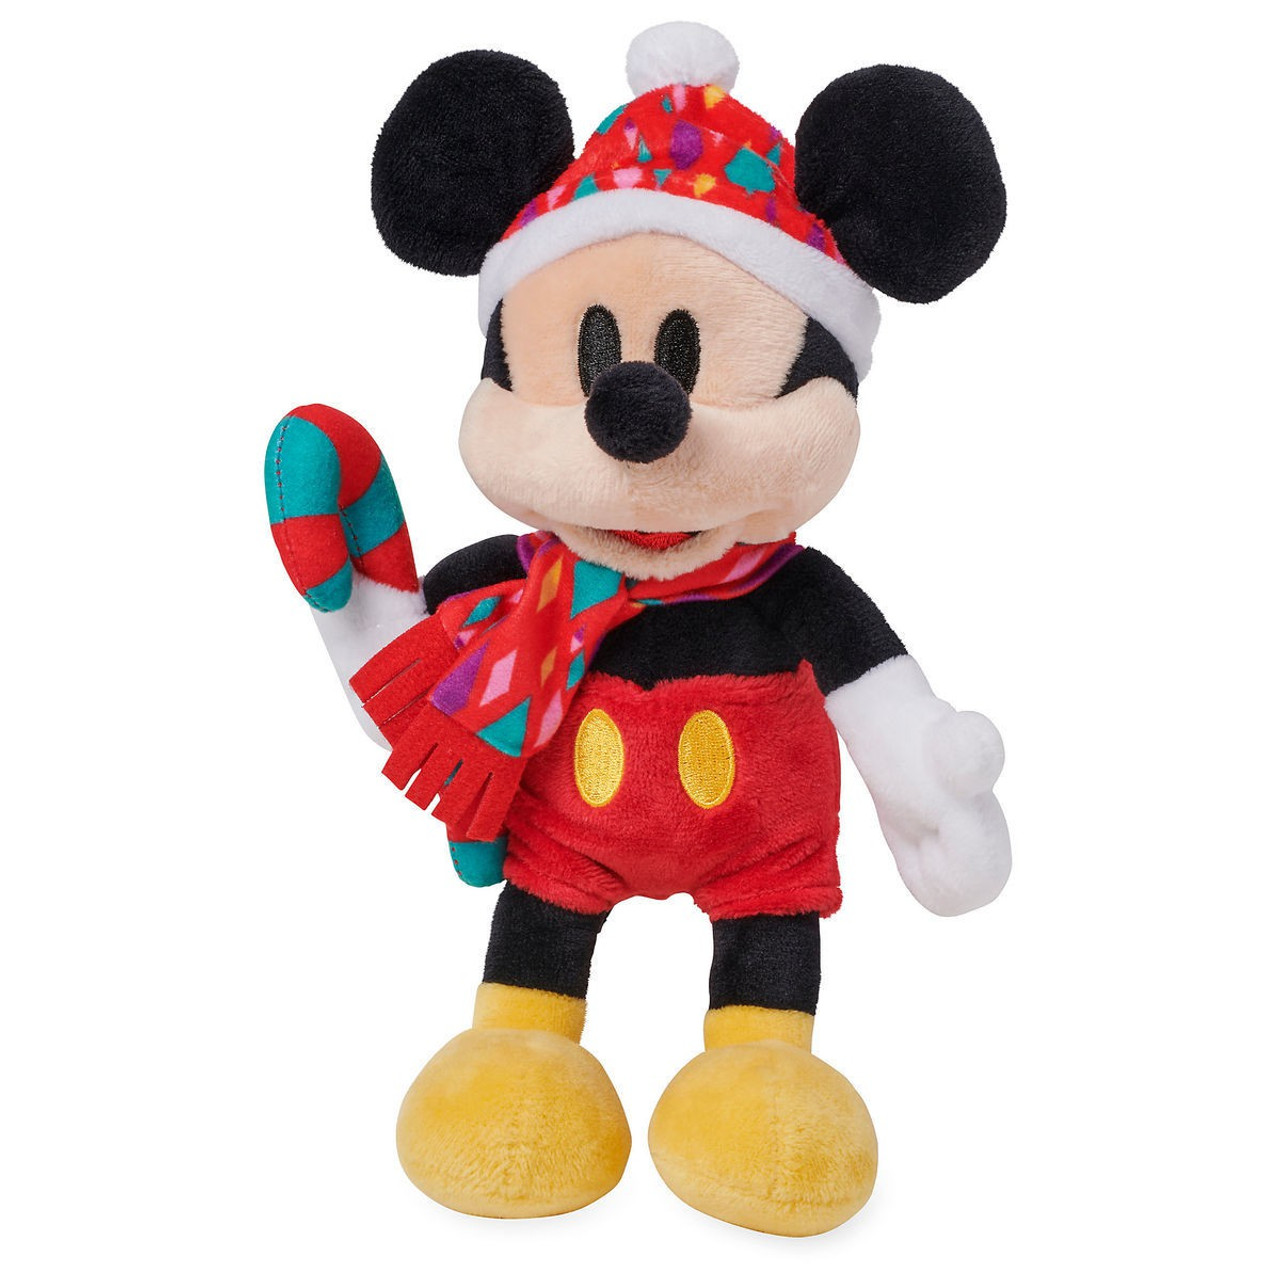 d67fff884d887 Disney 2018 Holiday Mickey Mouse Exclusive 10 Bean Bag Plush Candy Cane -  ToyWiz